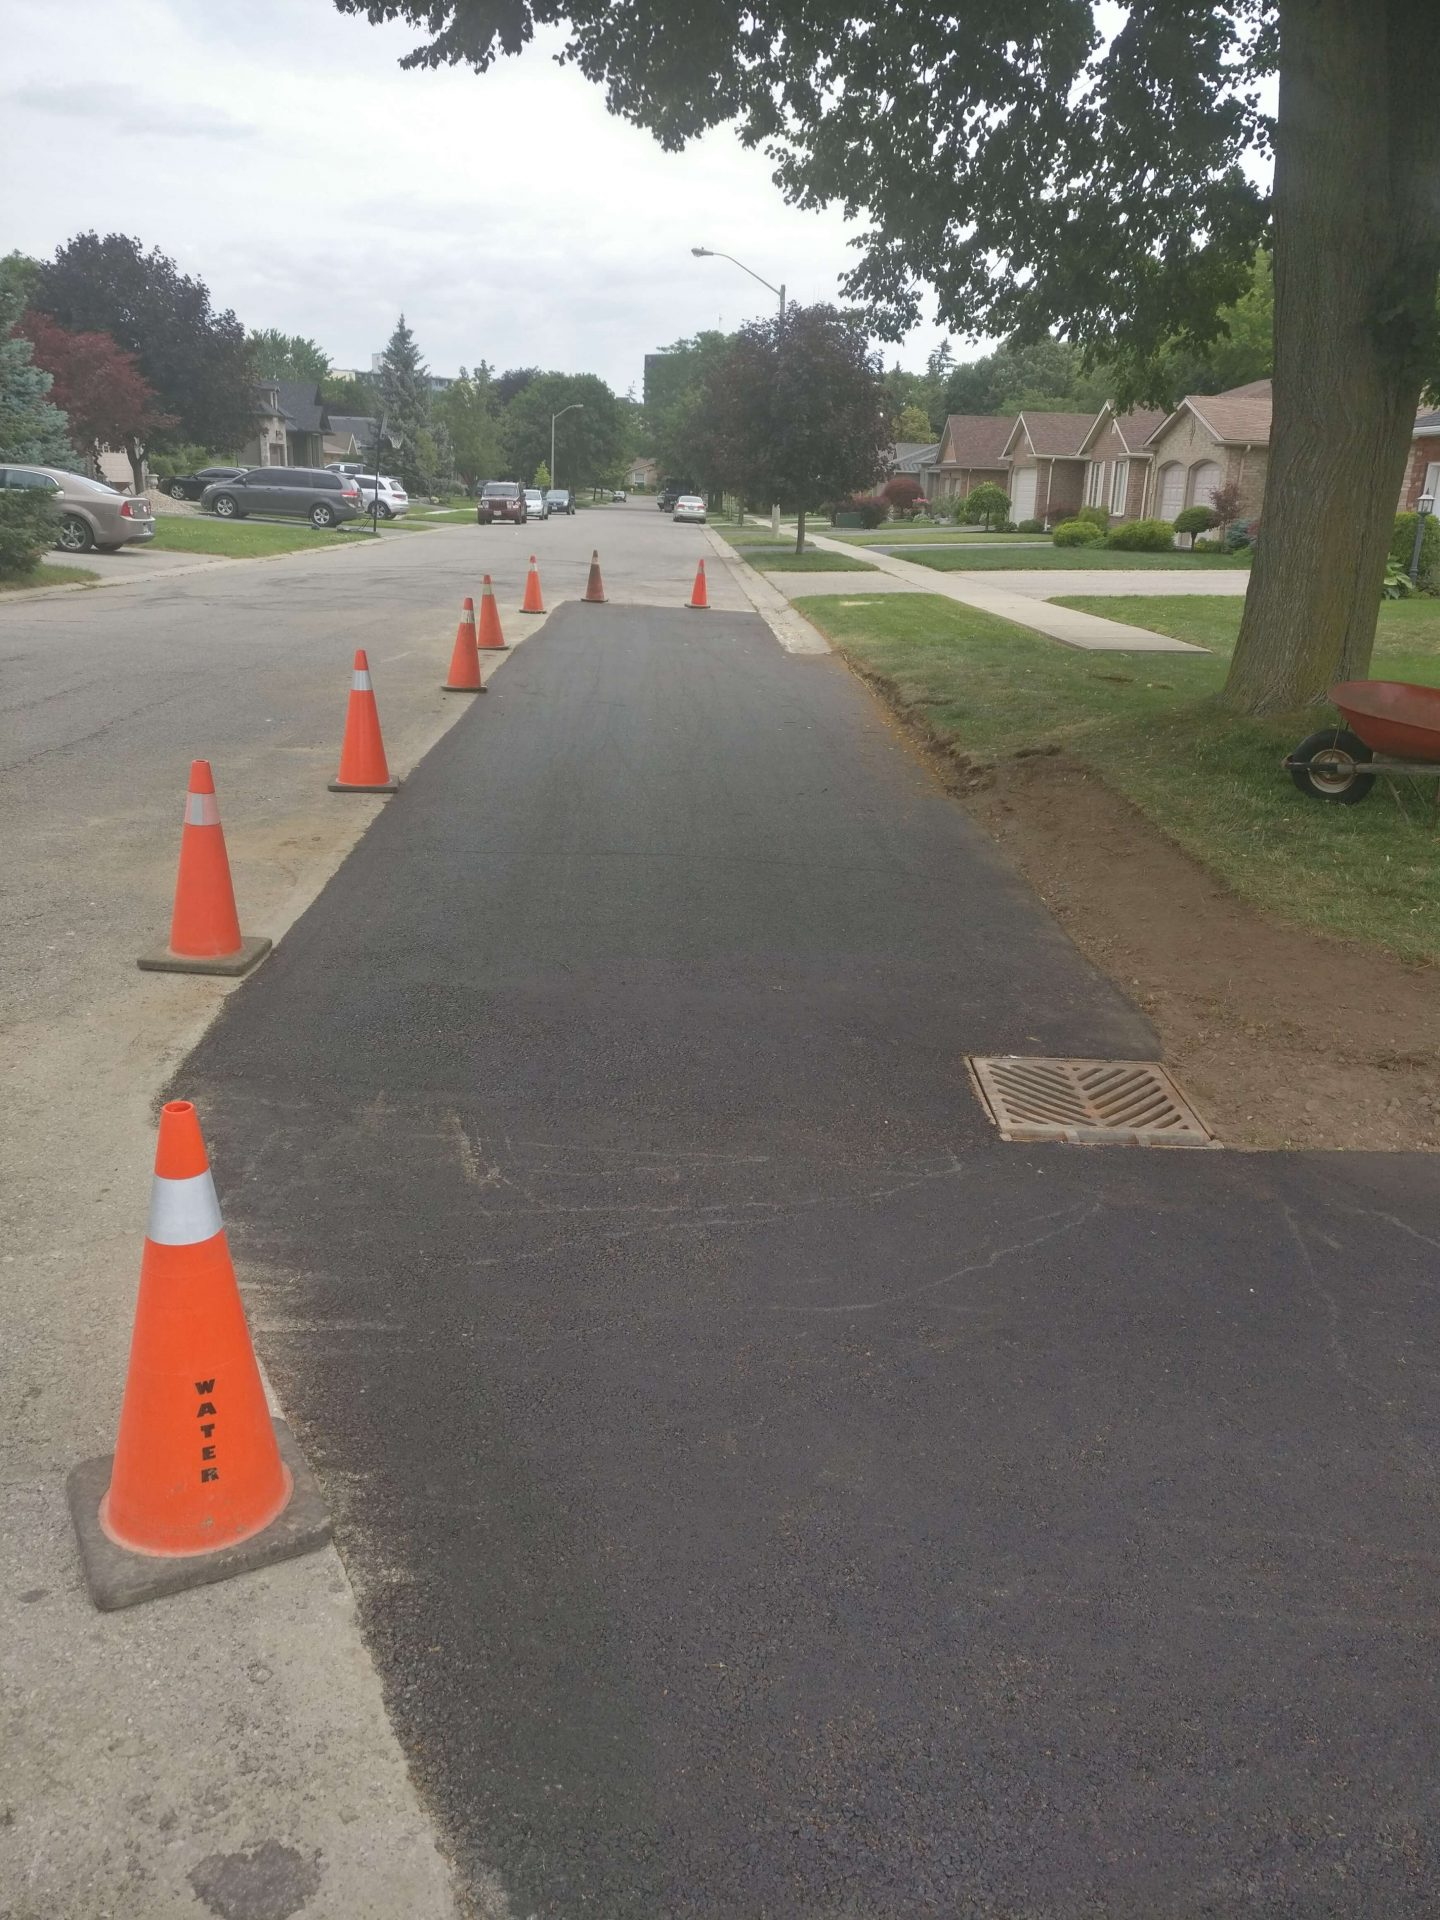 Paved section marked by pylons